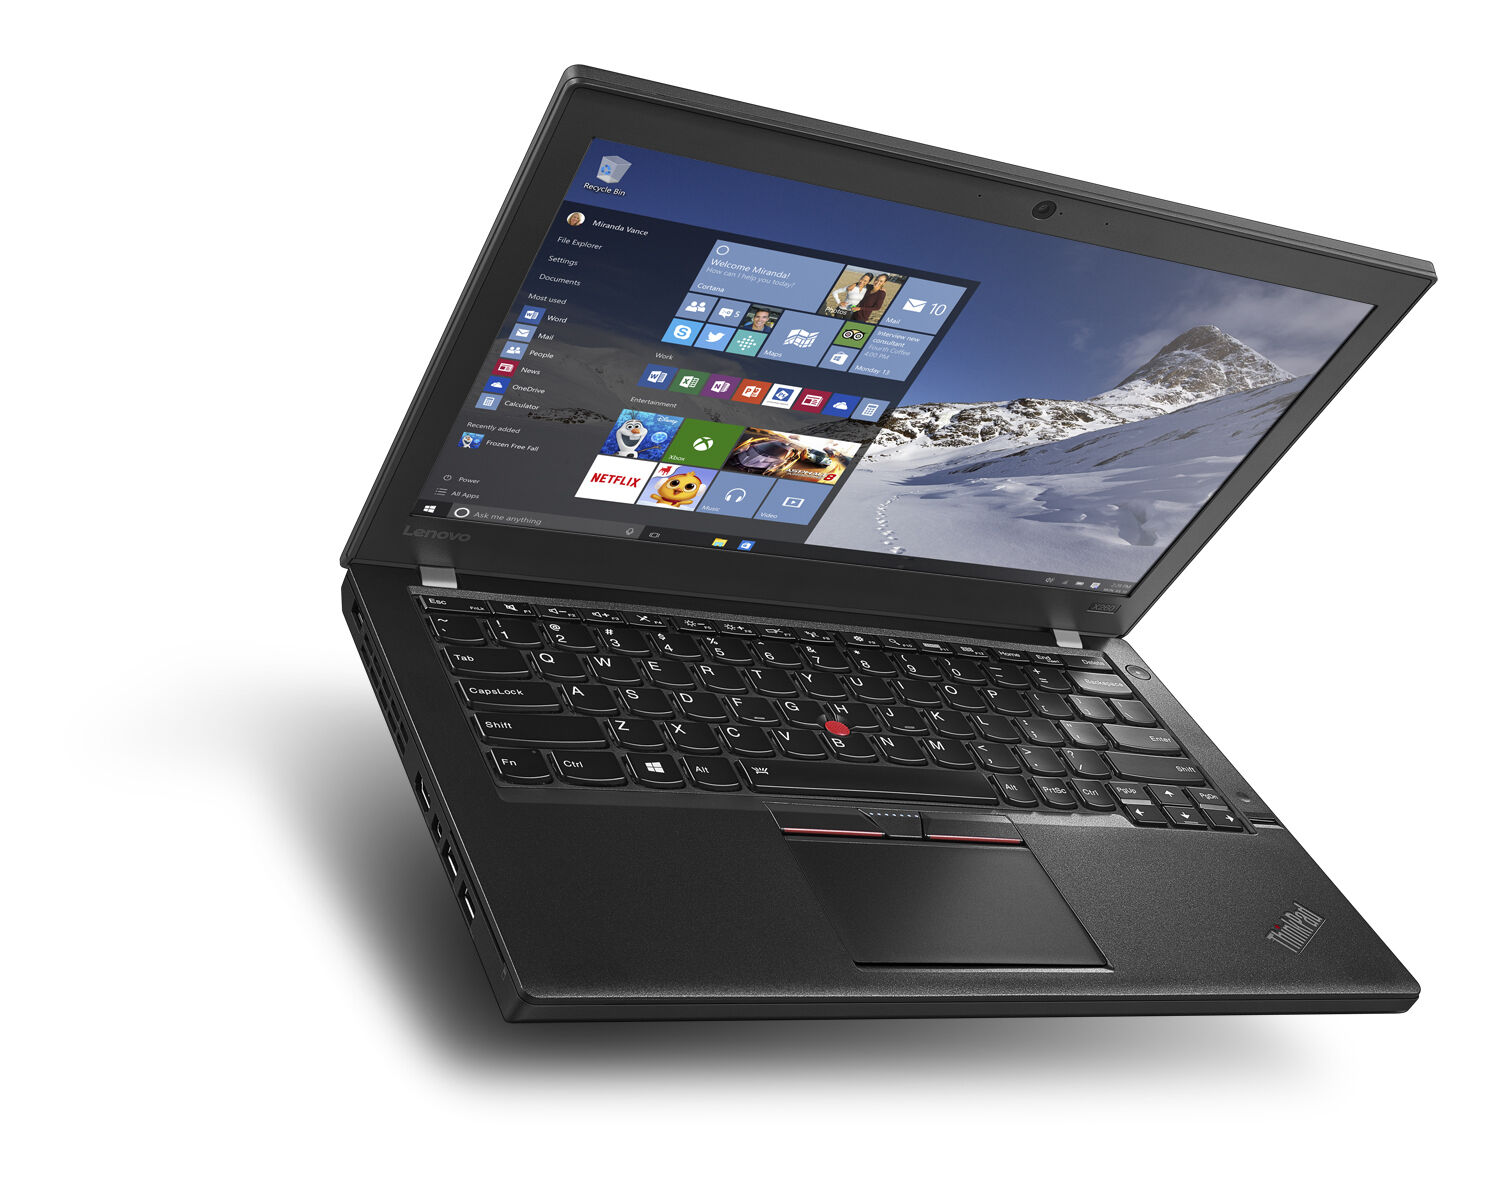 Lenovo Notebook 20F6005HUS 12.5 inch ThinkPad X260 Core i5-6200U 8GB 500GB